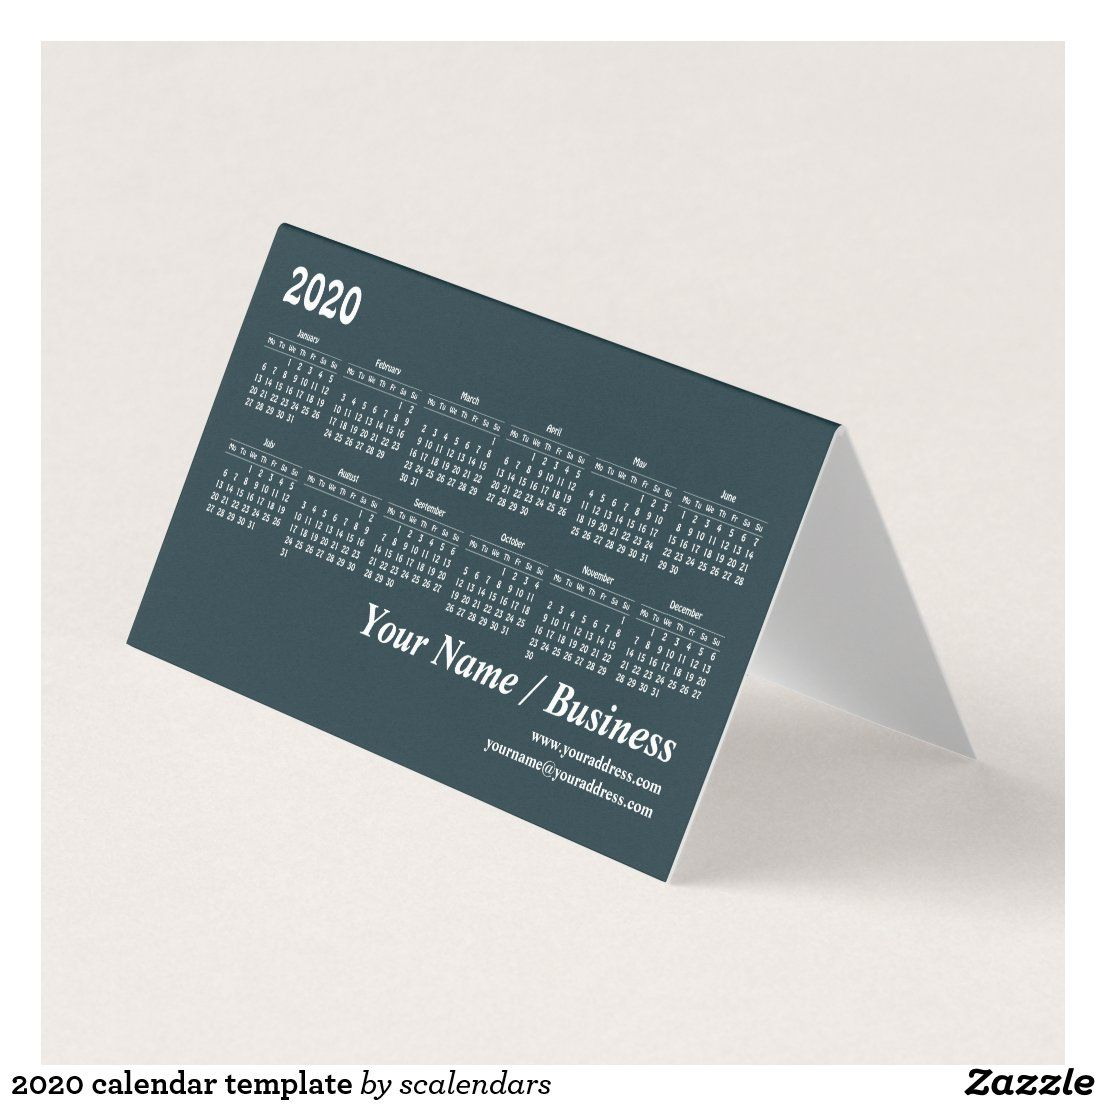 2020 Calendar Template Business Card Zazzle Com 2020 Calendar Template Calendar Template Folded Business Cards